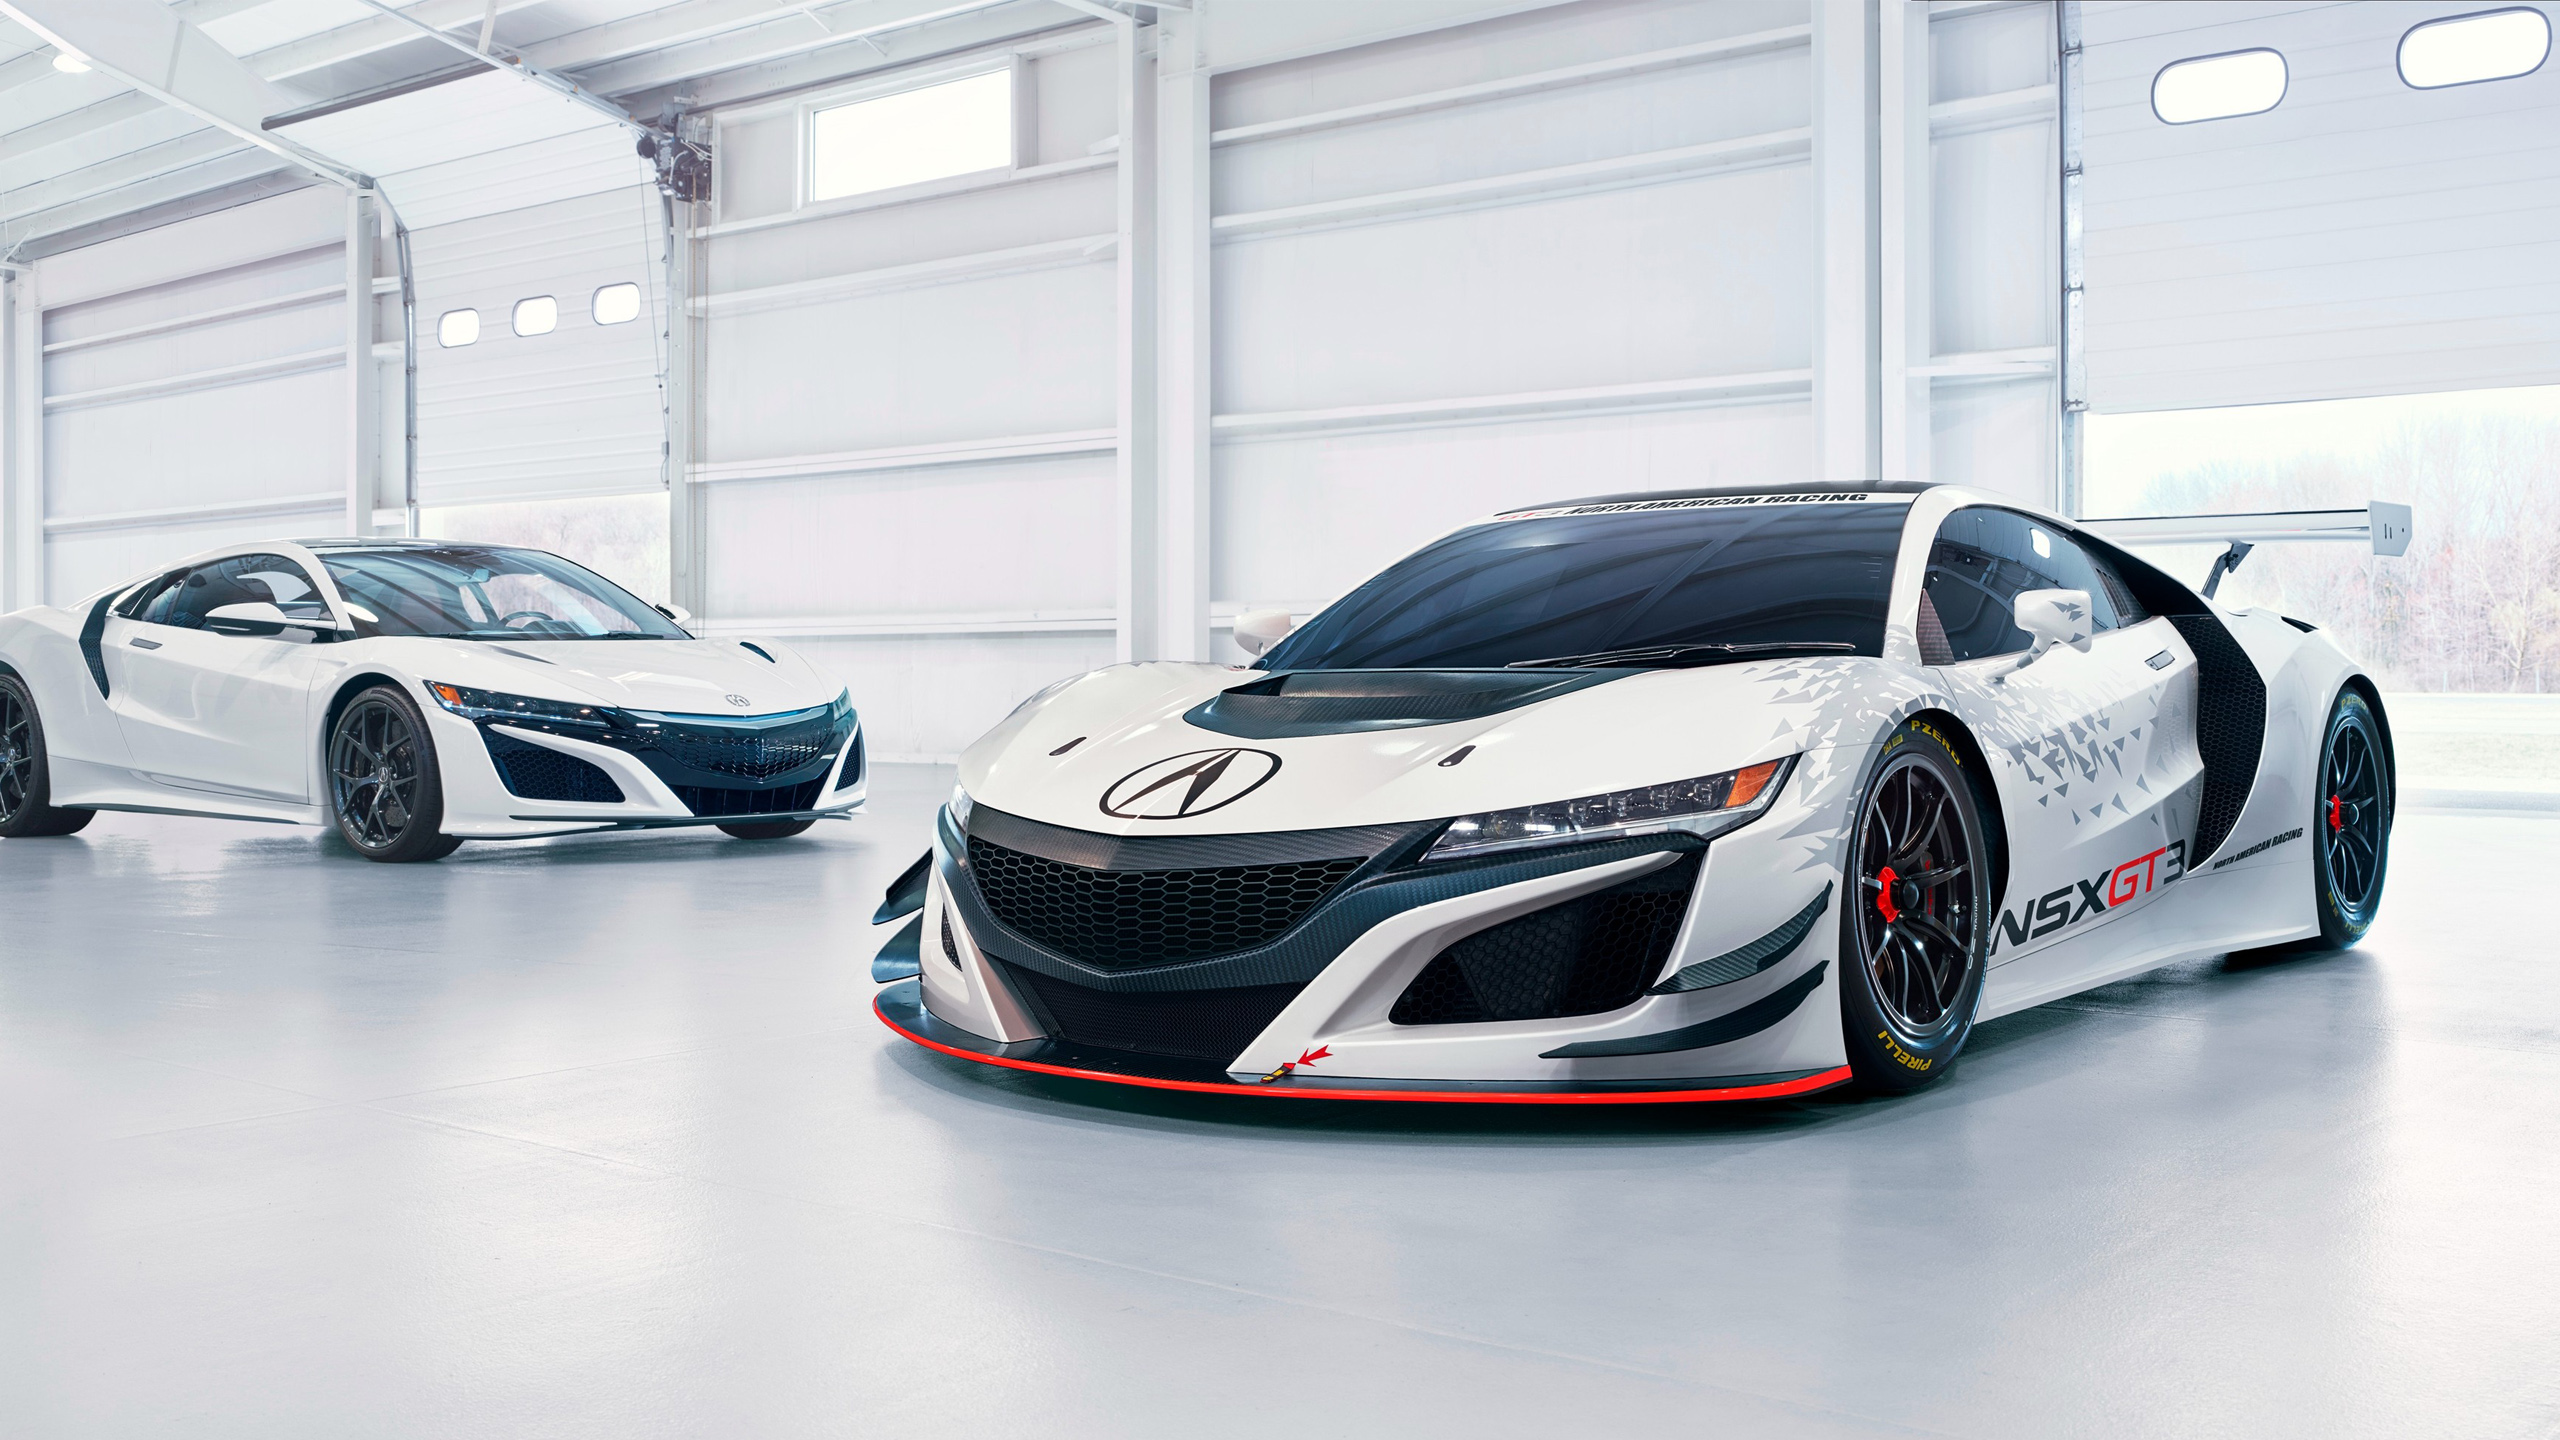 acura supercar wallpaper background hd 63393